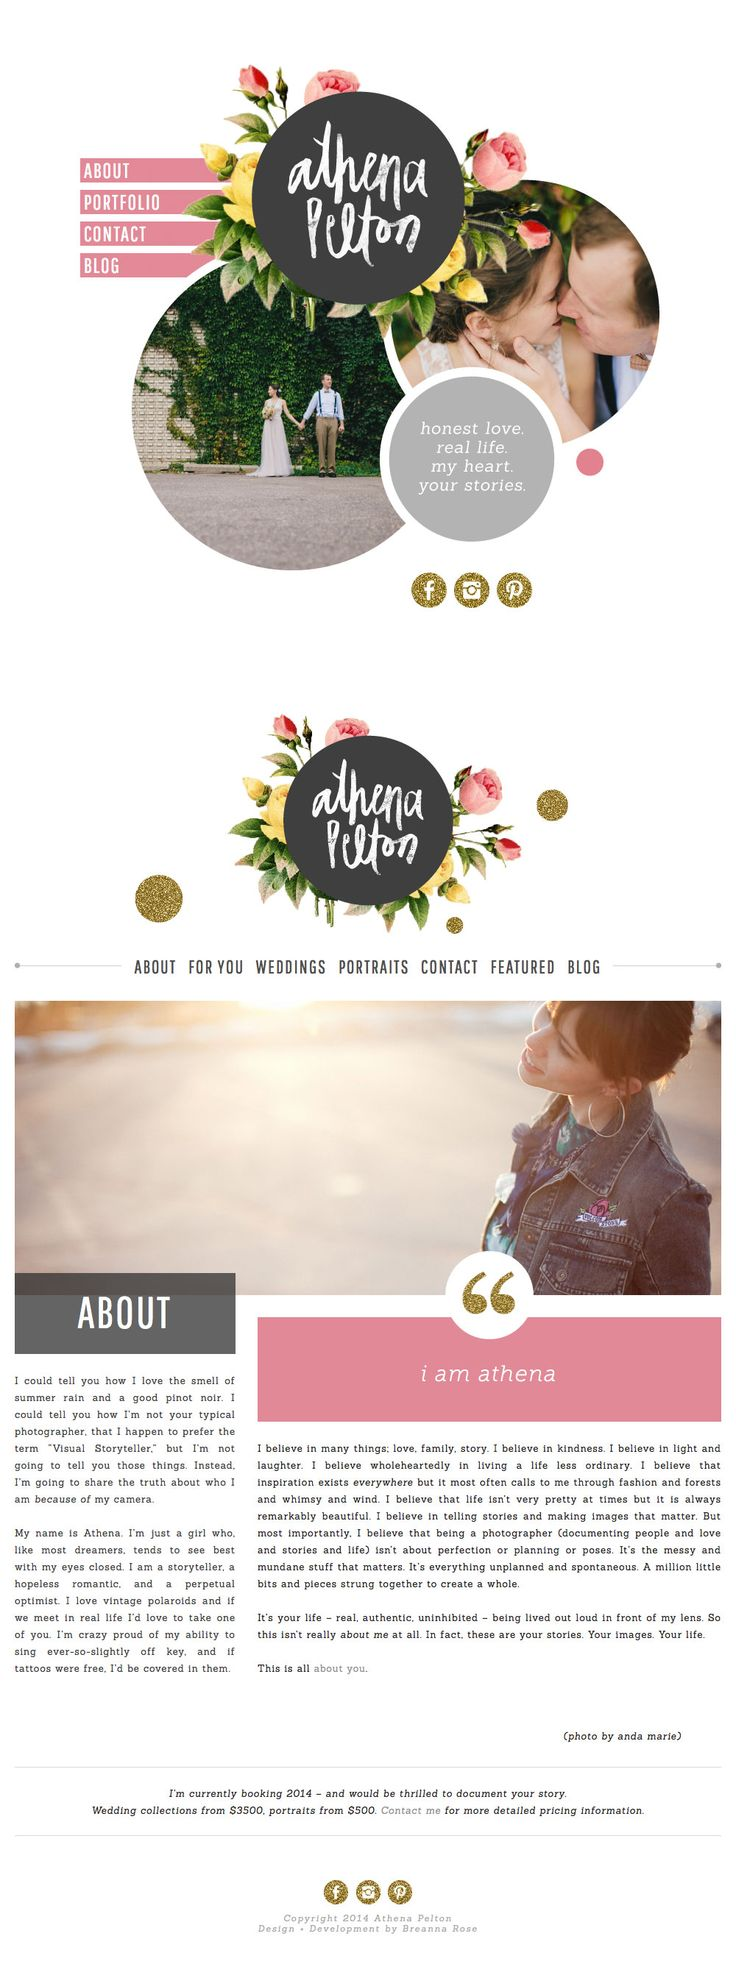 Athena Pelton #branding #webdesign I like the use of space her vs a top bar on the site for click throughs. #trixmedia , No matter where you are, we can make it work. TRIXMEDIA offers branding services to help your business grow in a changing world. www.trixmedia.com.